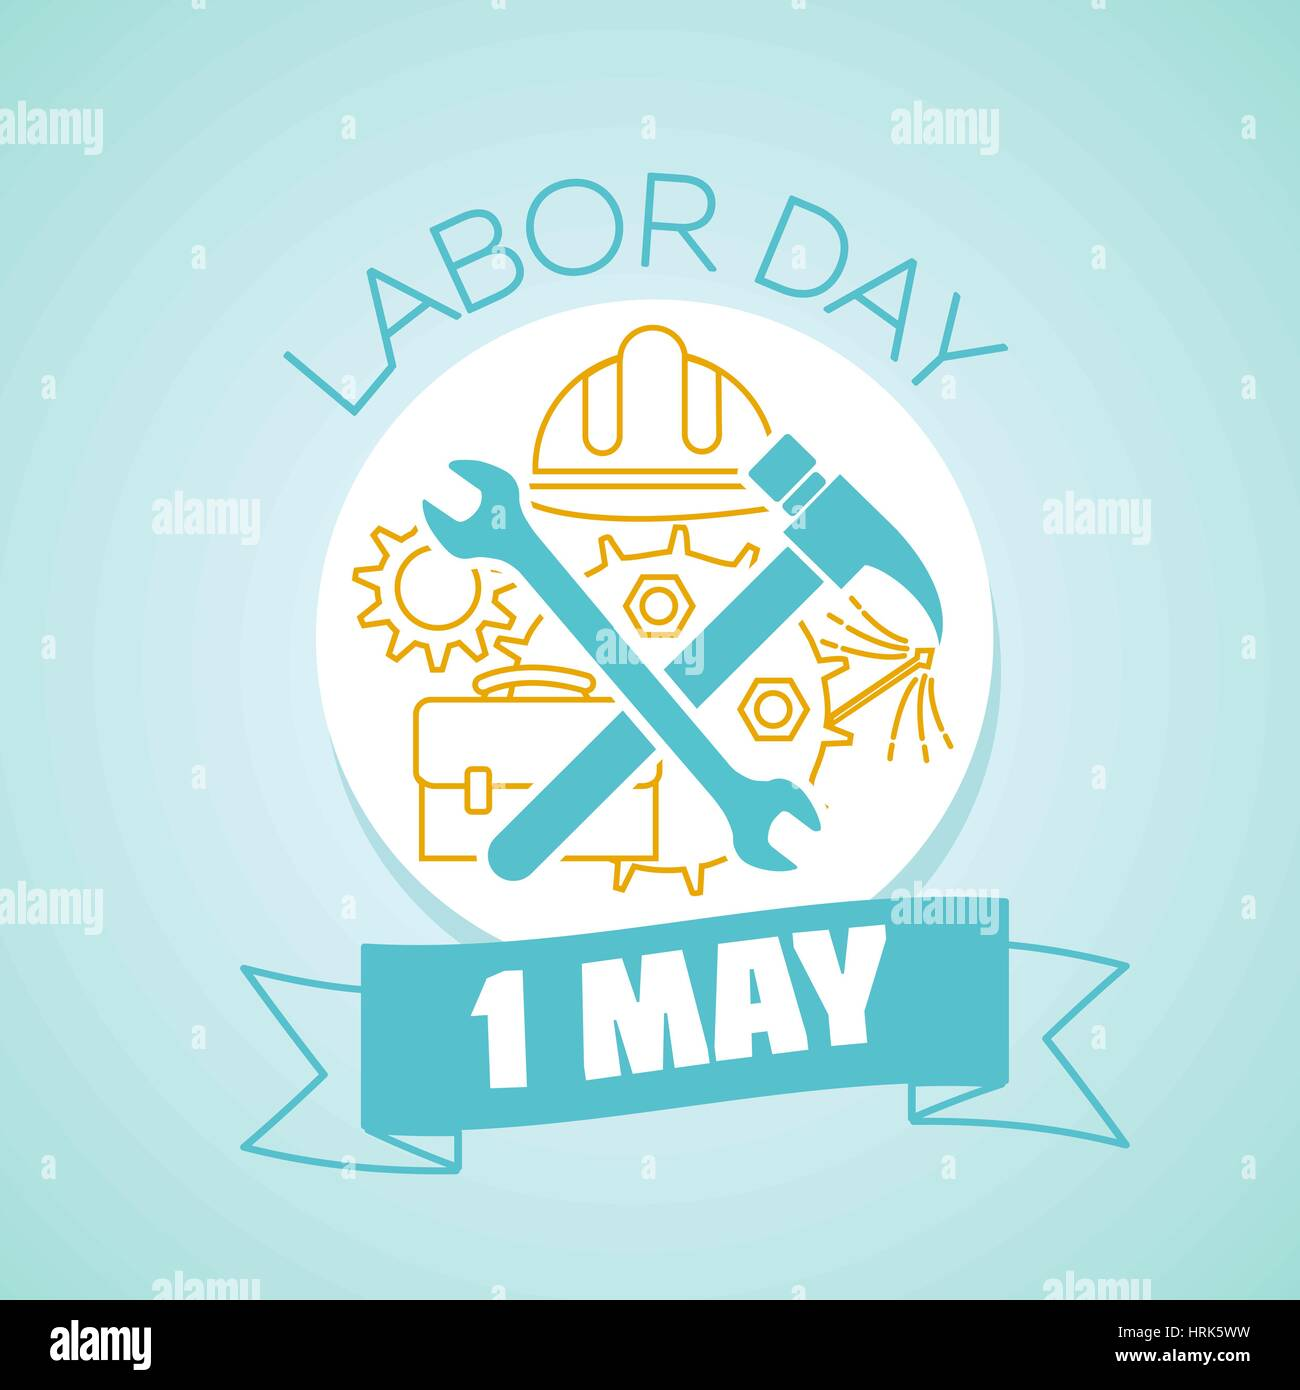 Calendar For Each Day On May 1 Greeting Card Holiday Labor Day